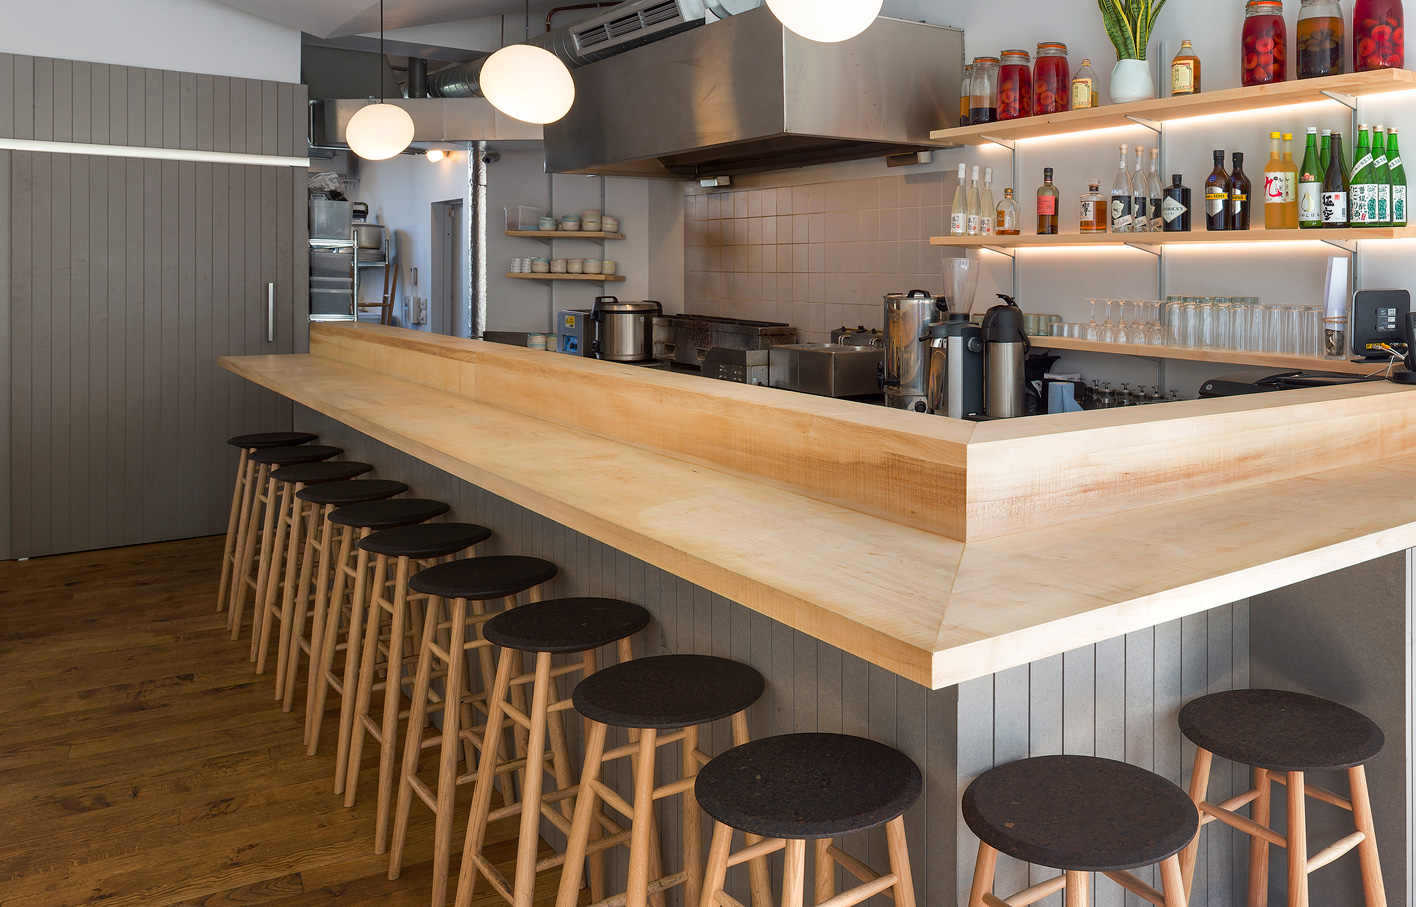 Aldworth James & Bond | Sycamore bar top for Japanese eatery Jidori in Dalston